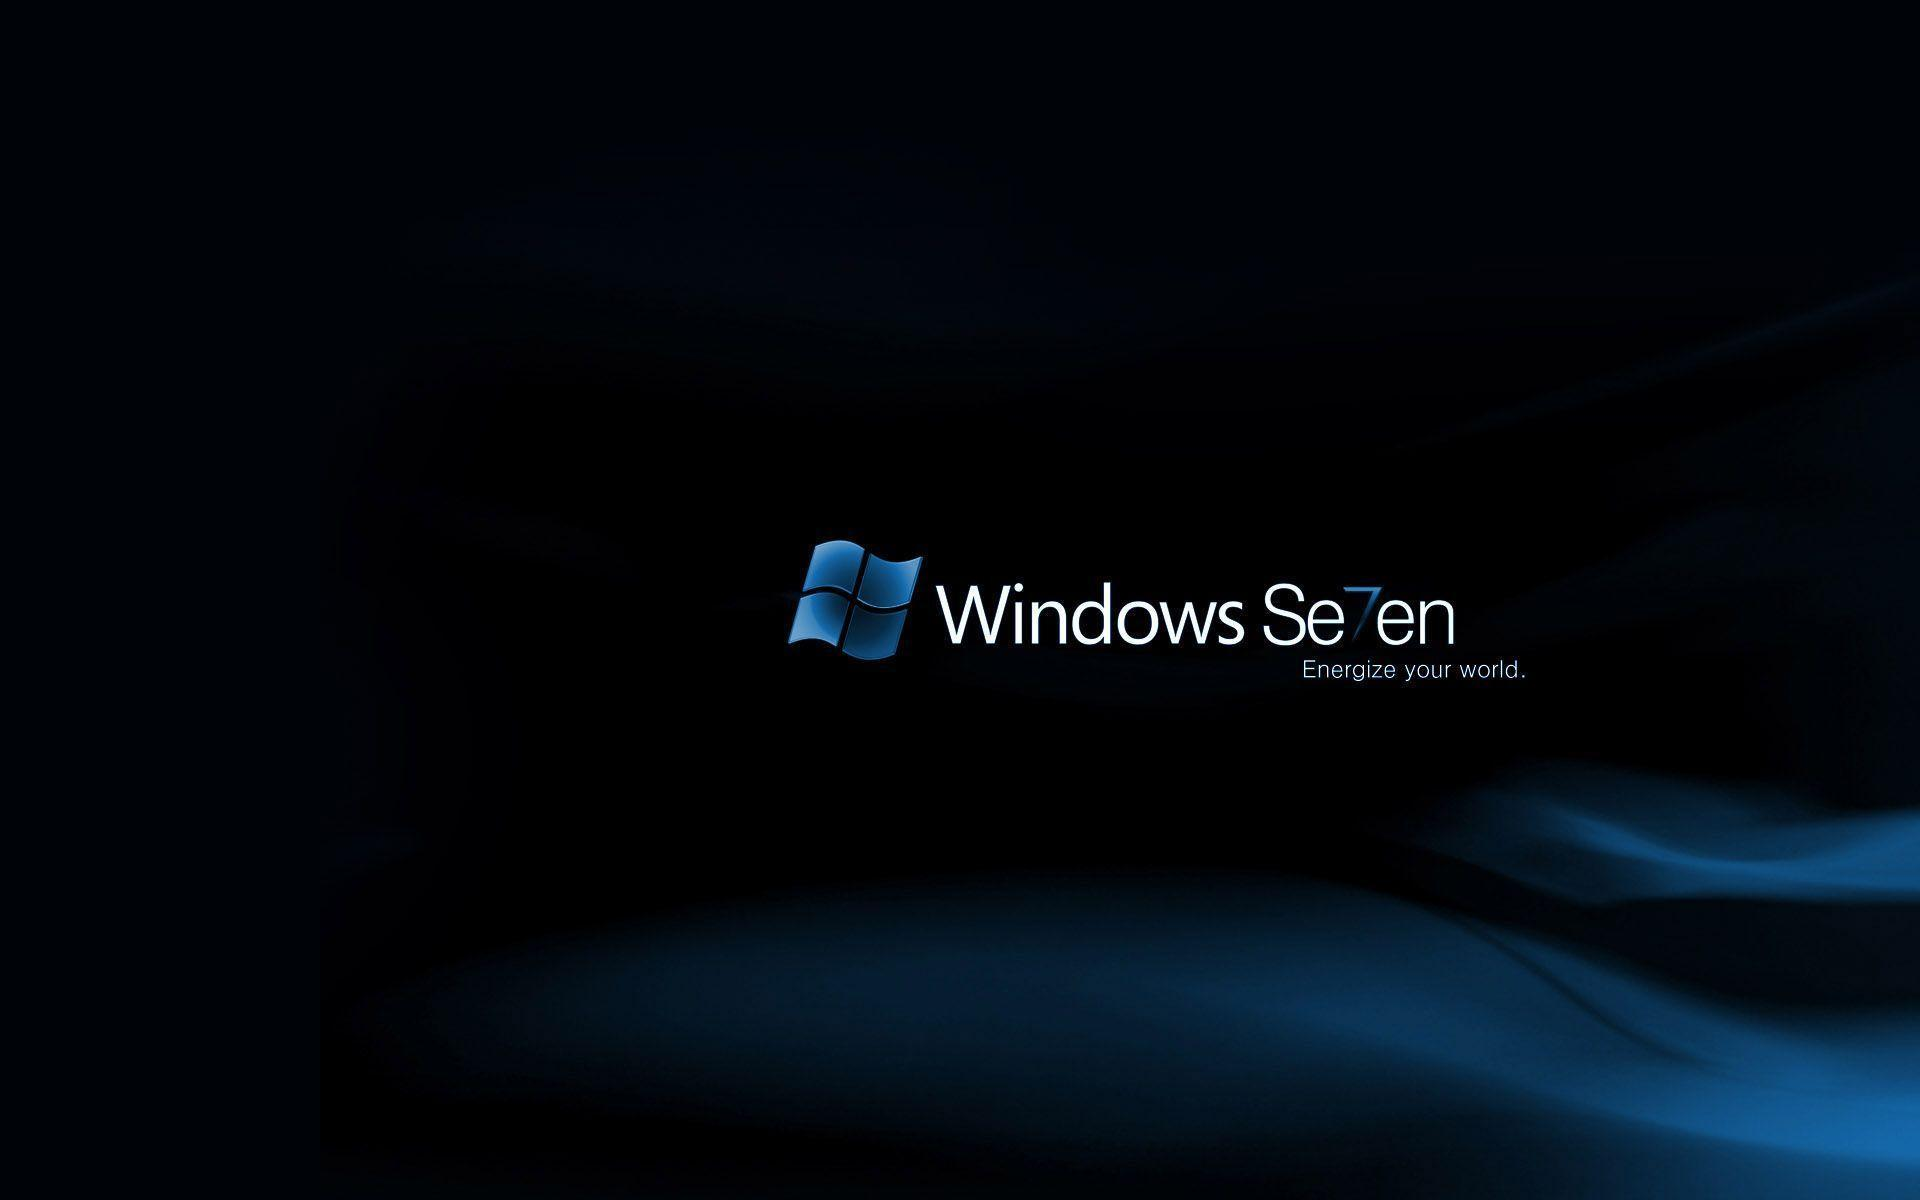 Microsoft talkes about Windows 7 and USB 3.0